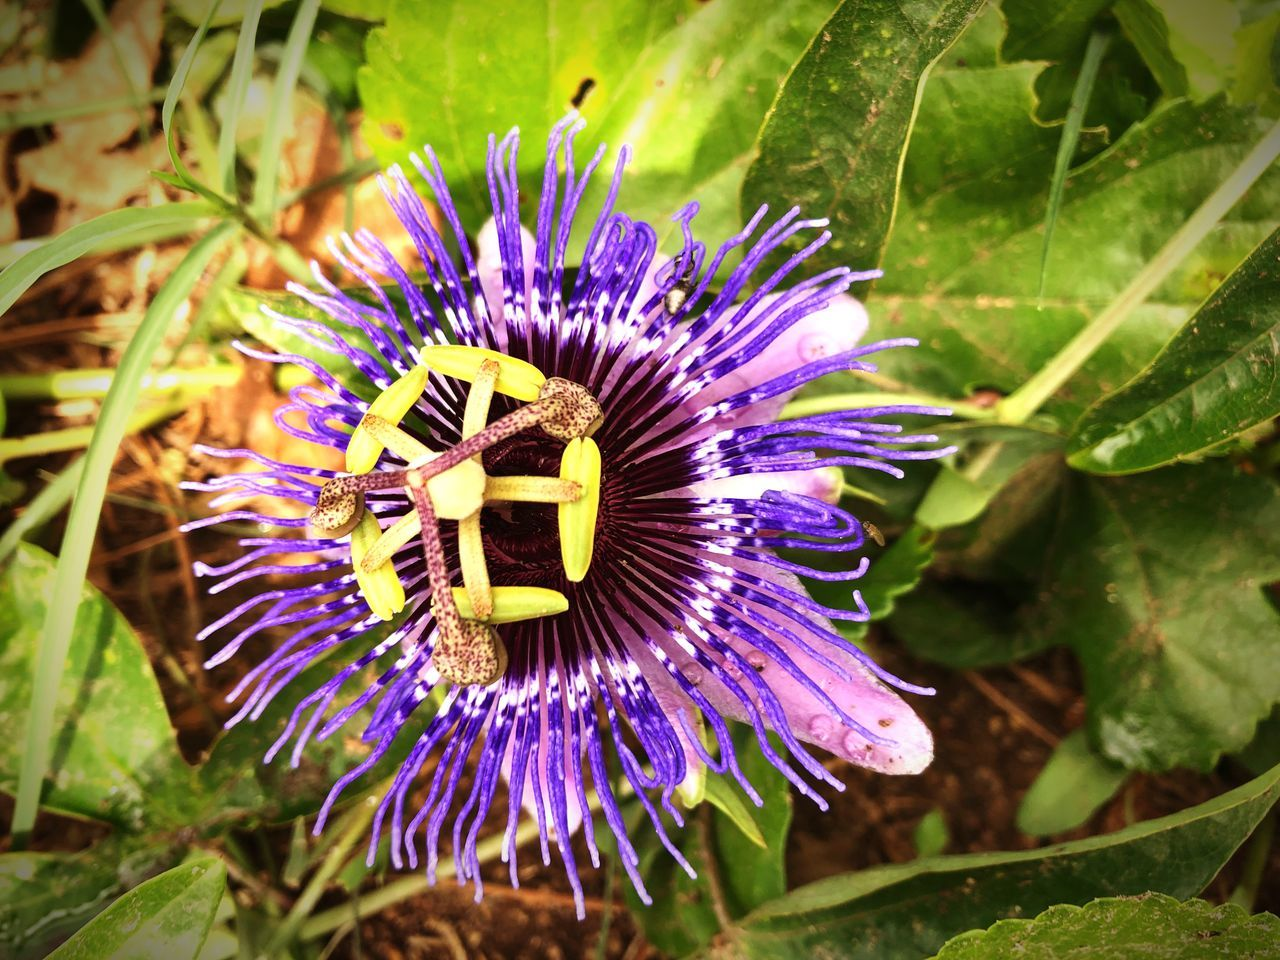 flower, flowering plant, plant, purple, growth, freshness, fragility, beauty in nature, vulnerability, flower head, inflorescence, close-up, petal, nature, passion flower, pollen, leaf, plant part, no people, outdoors